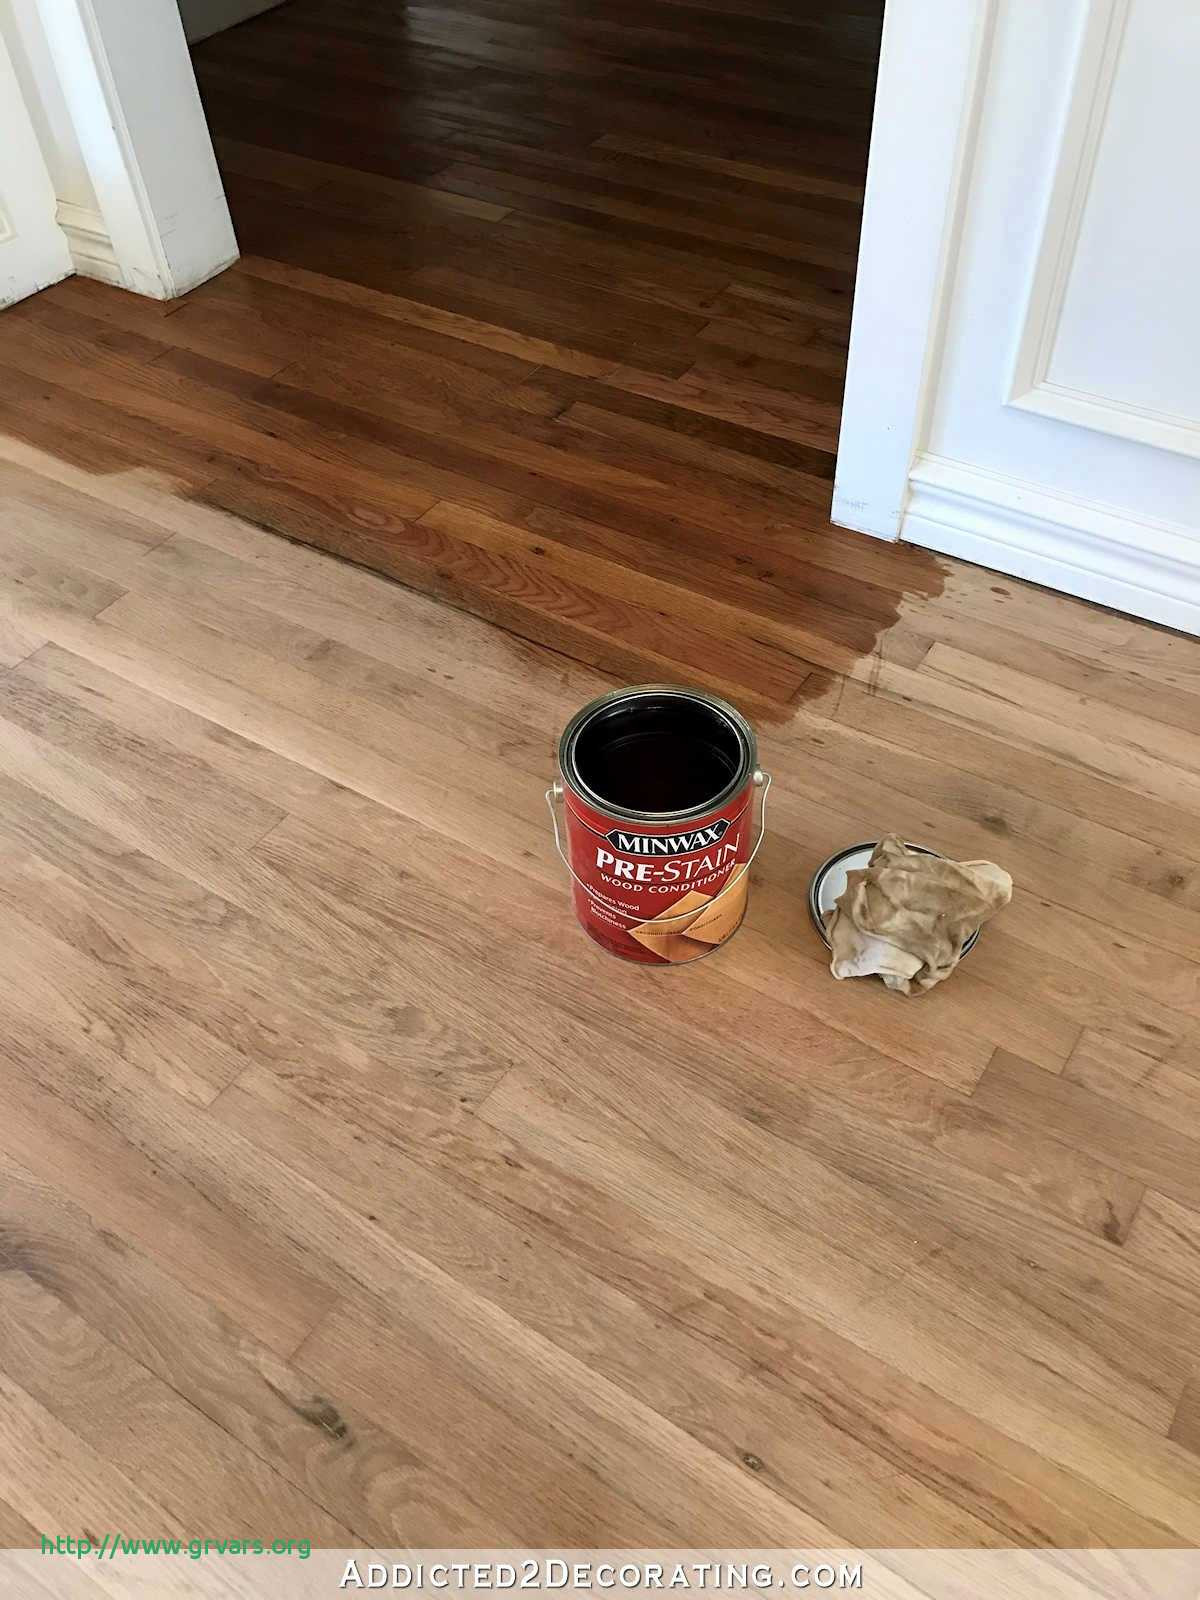 glue down prefinished hardwood flooring of 22 luxe scratches on hardwood floors from dogs ideas blog for related post where to buy hardwood flooring inspirational 0d grace place barnegat from hardwood flooring los